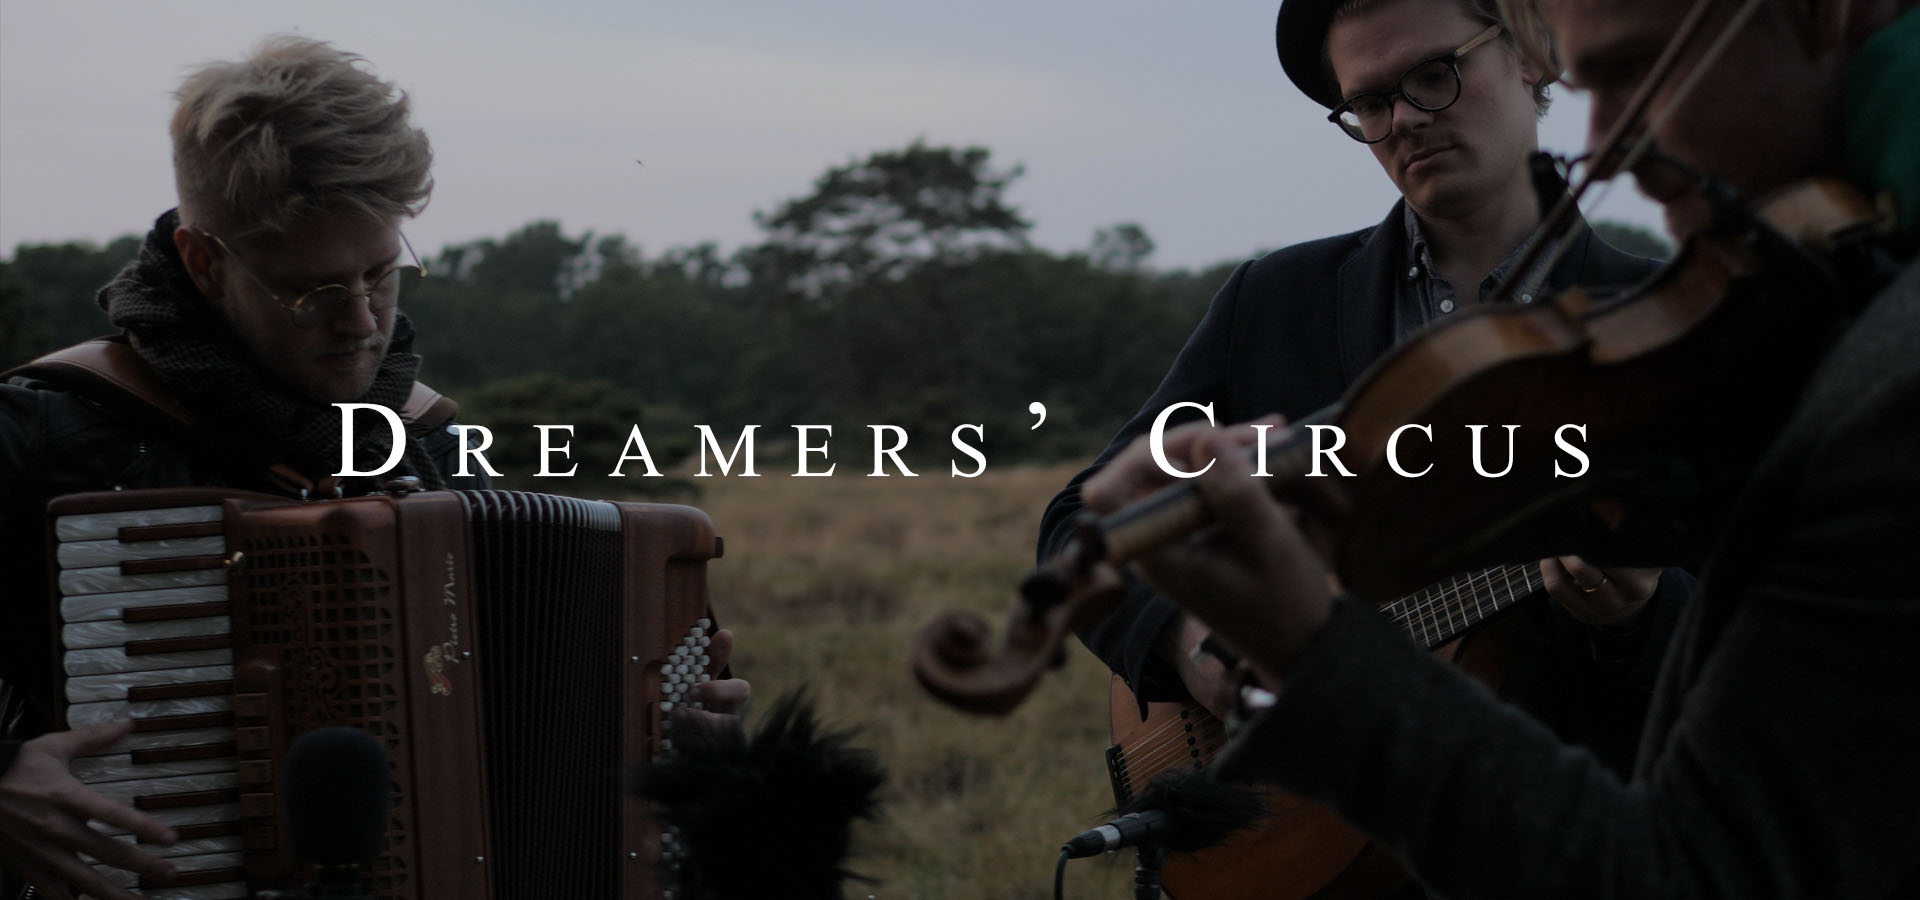 "<a href=""https://www.moensessions.com/2017/10/24/dreamers-circus/"">October 2017</a>"